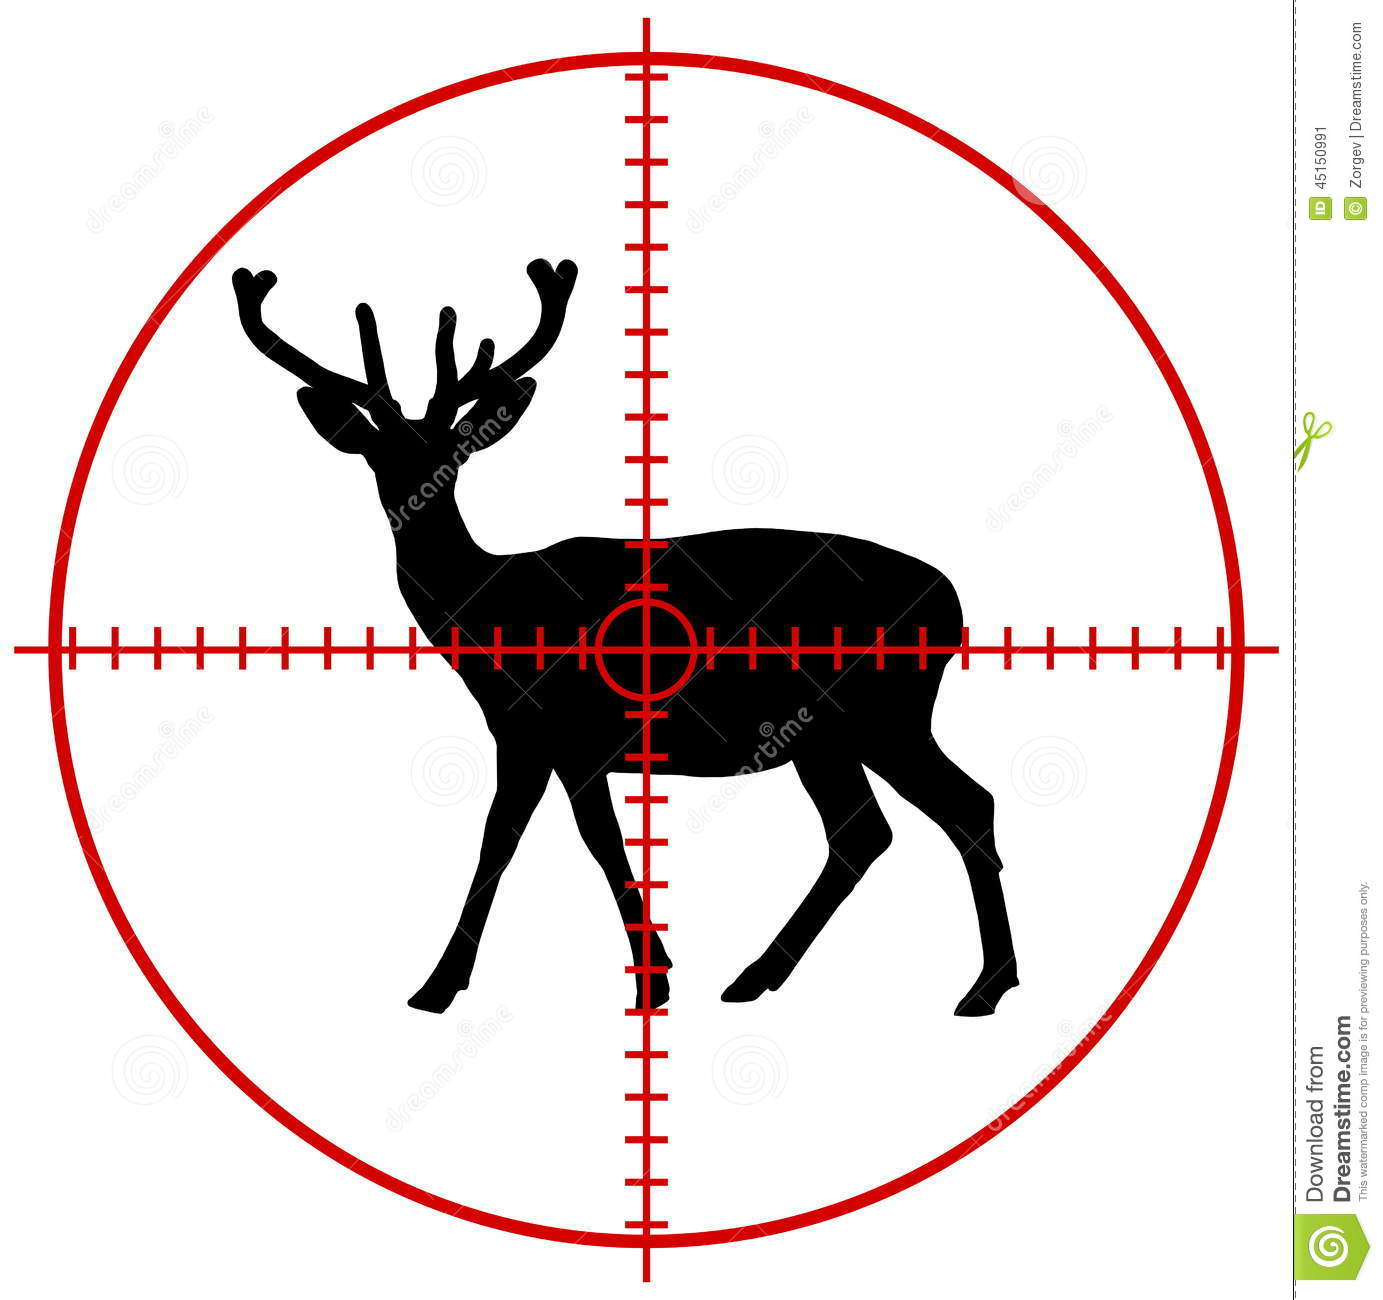 Deer In A Target Stock Photo - Image: 45150991